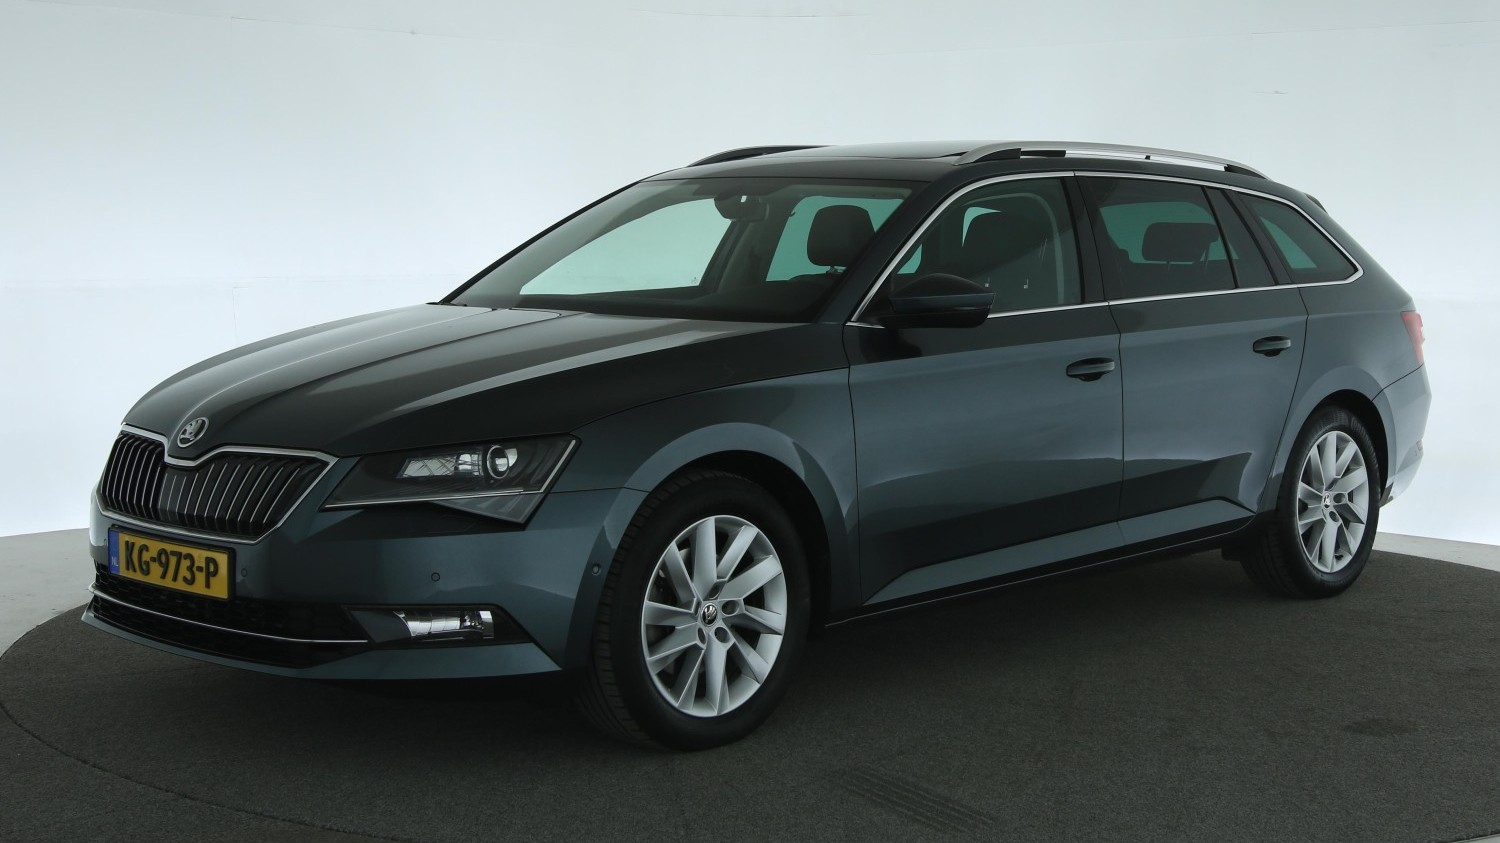 Skoda Superb Station 2016 KG-973-P 1